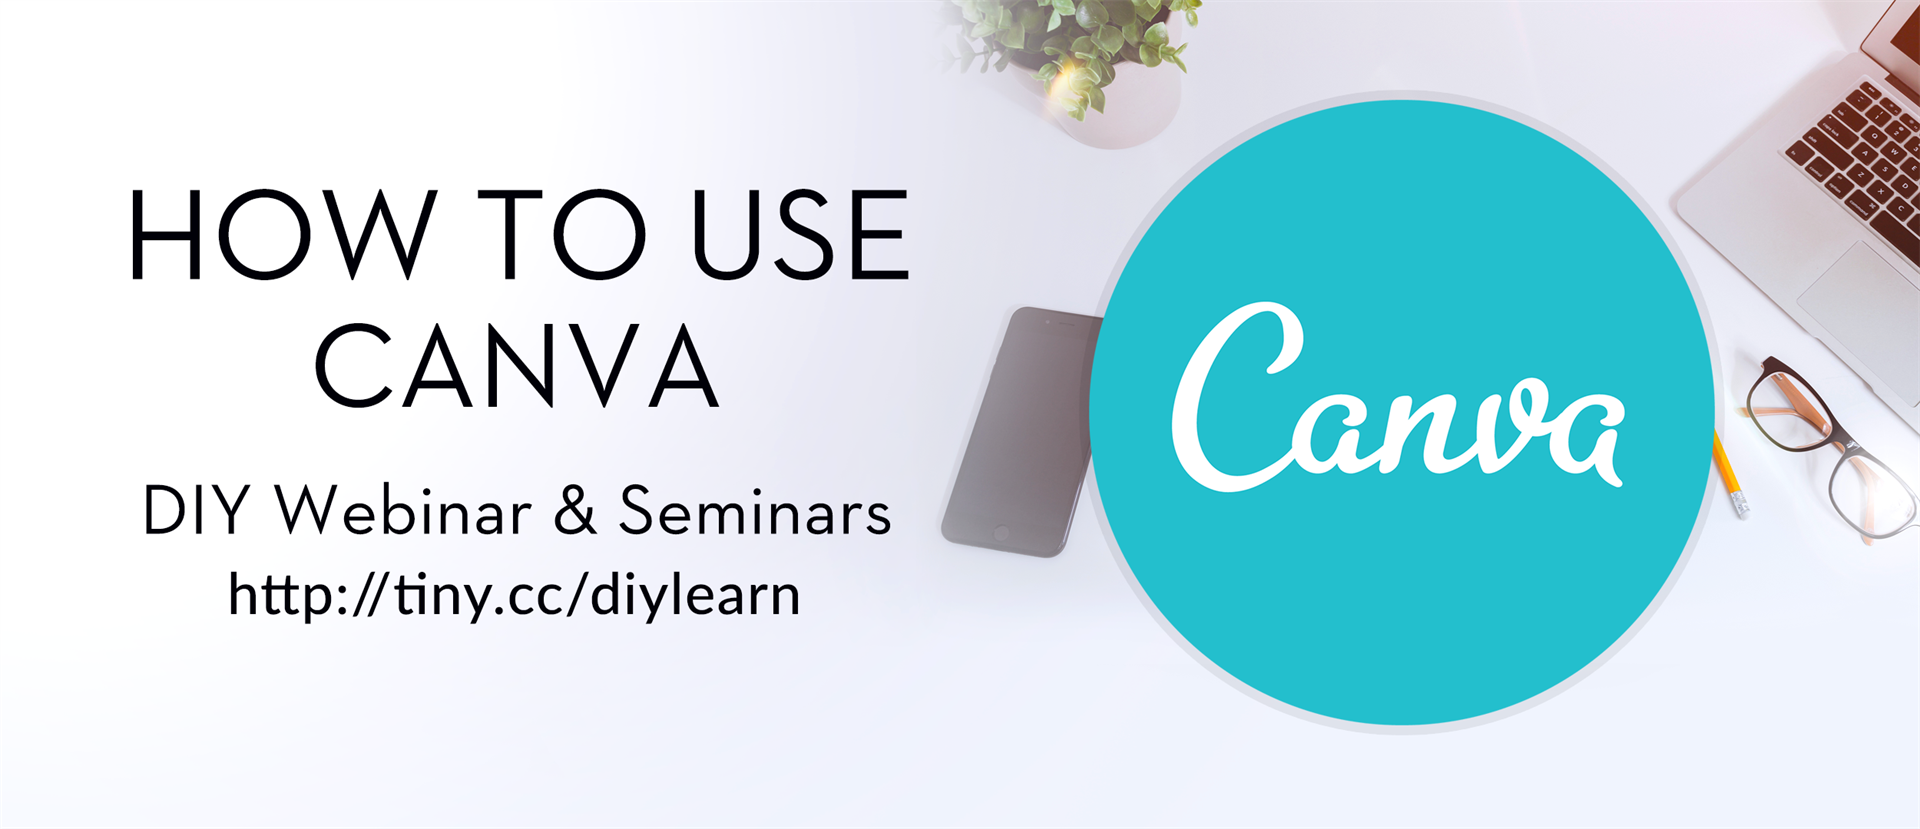 How to Use Canva Seminar in Portland LIVE!